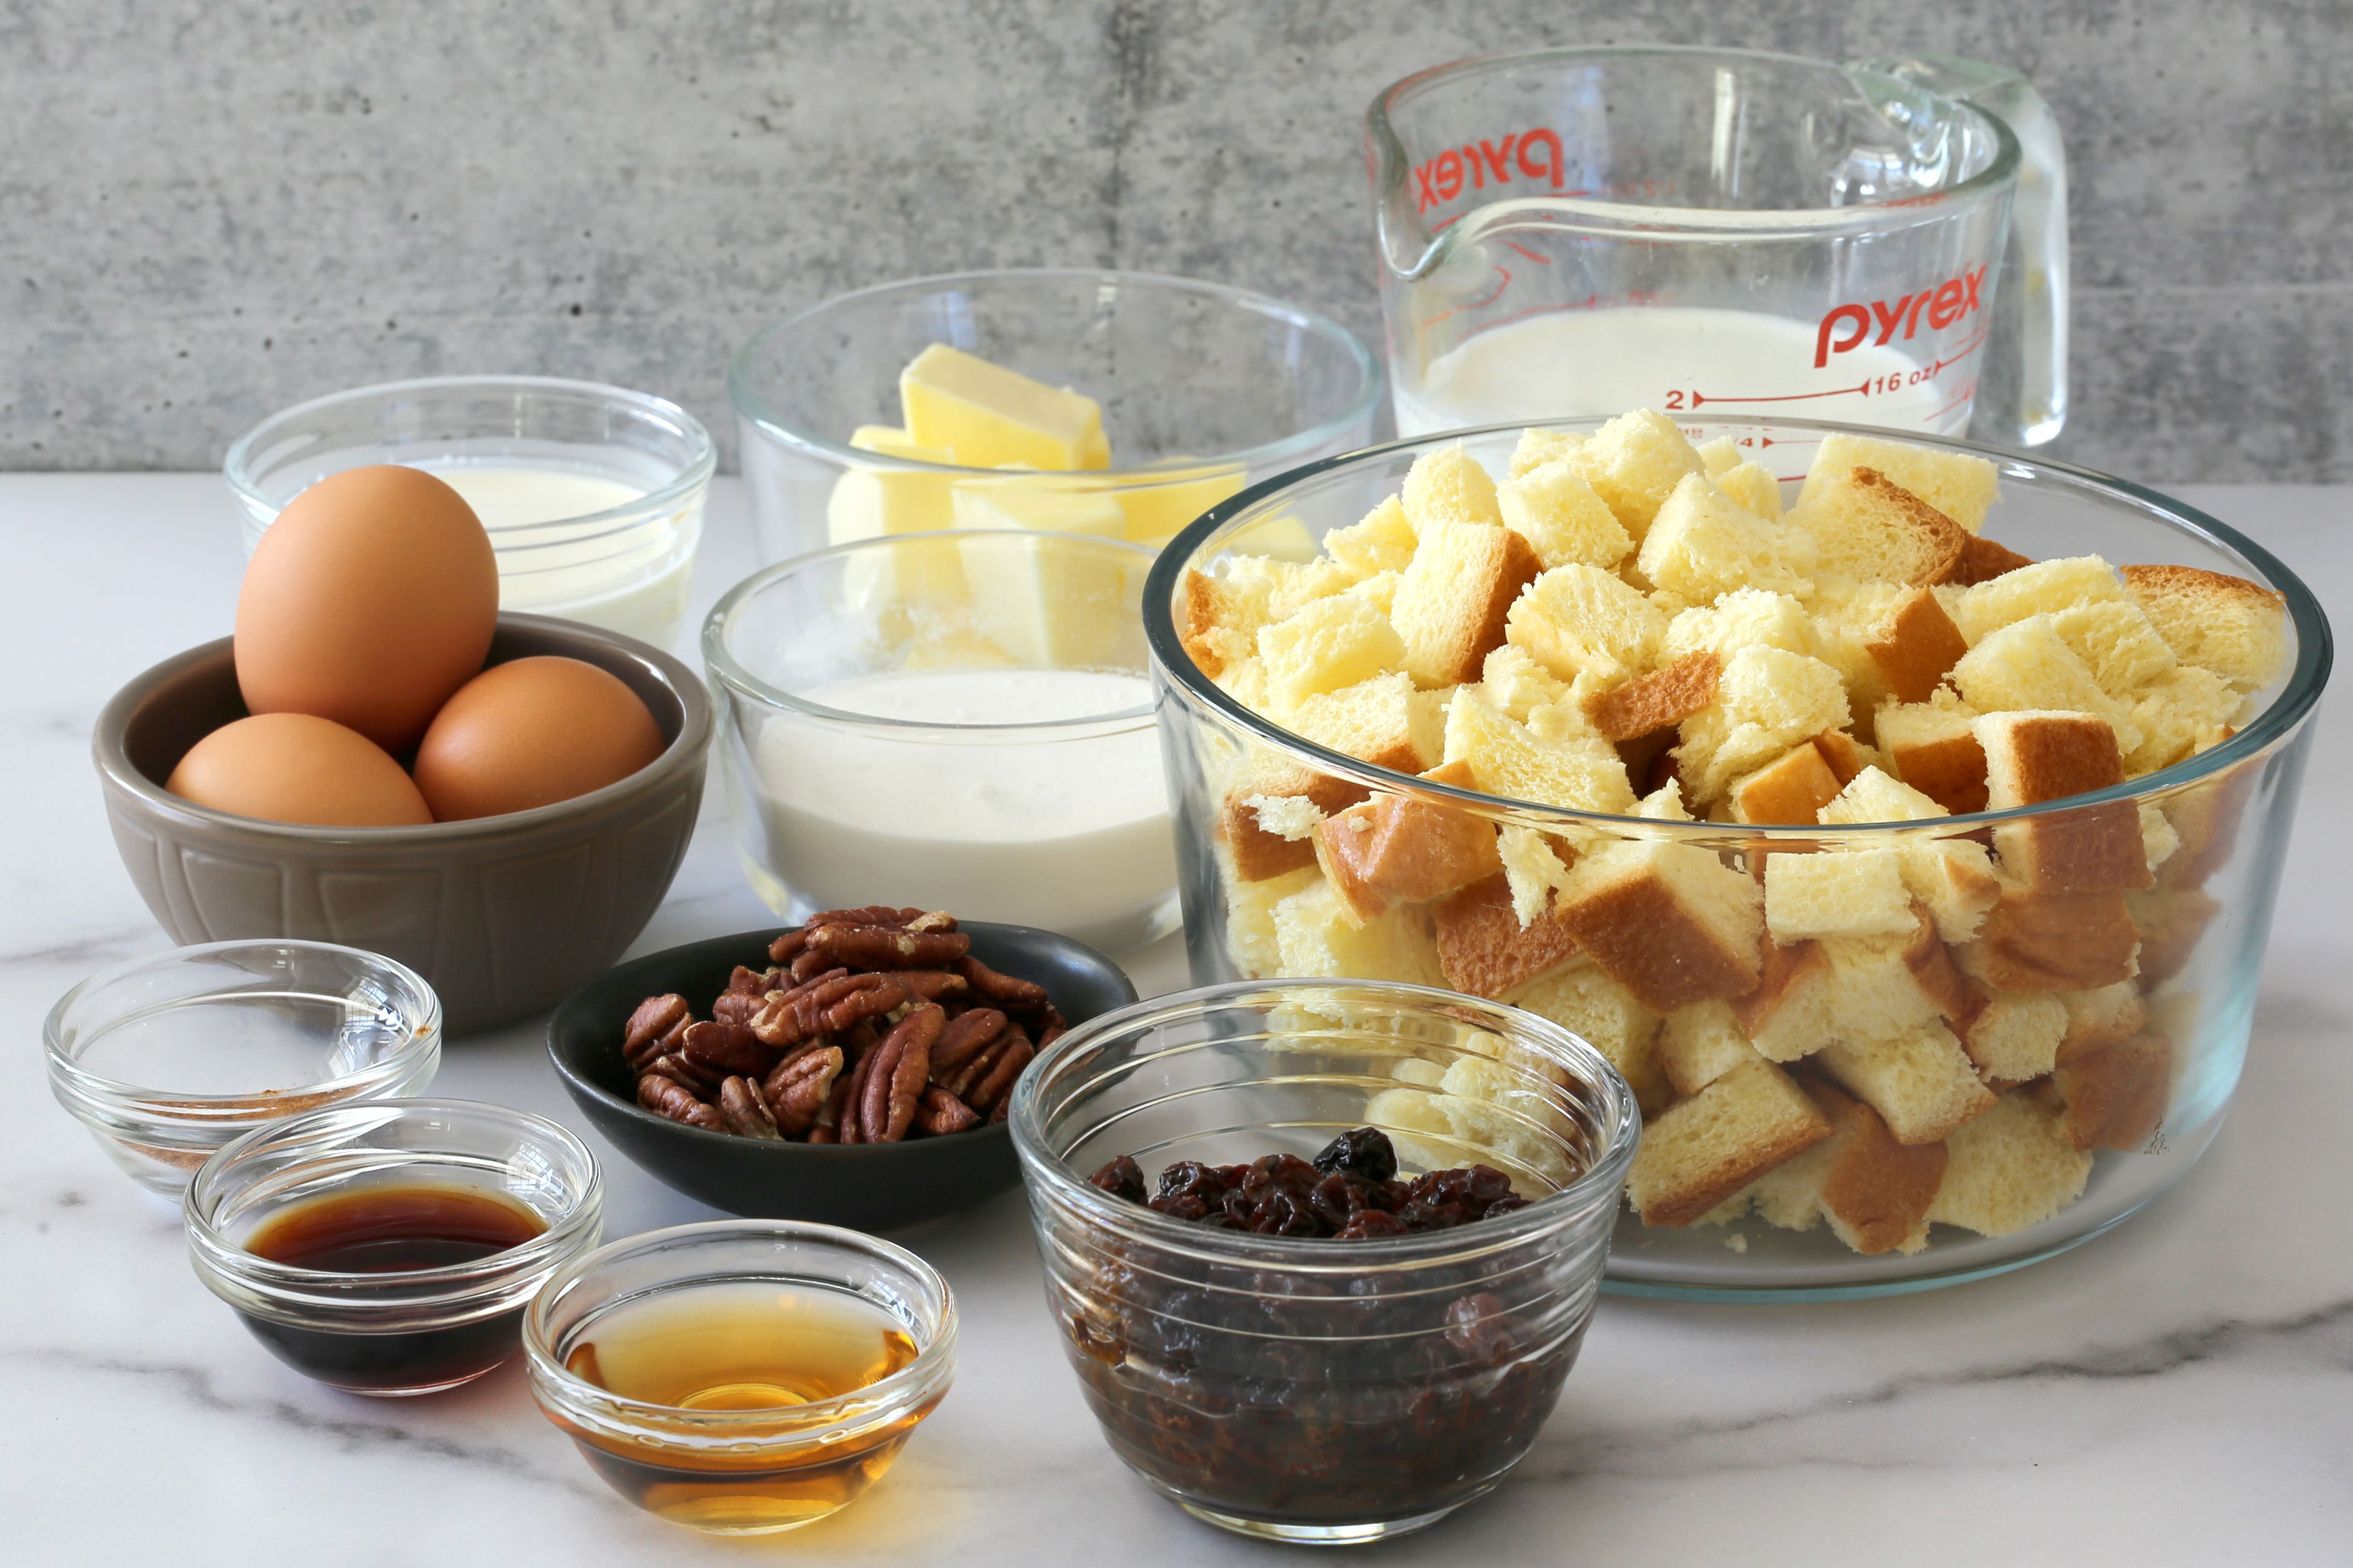 Ingredients for Instant Pot bread pudding.